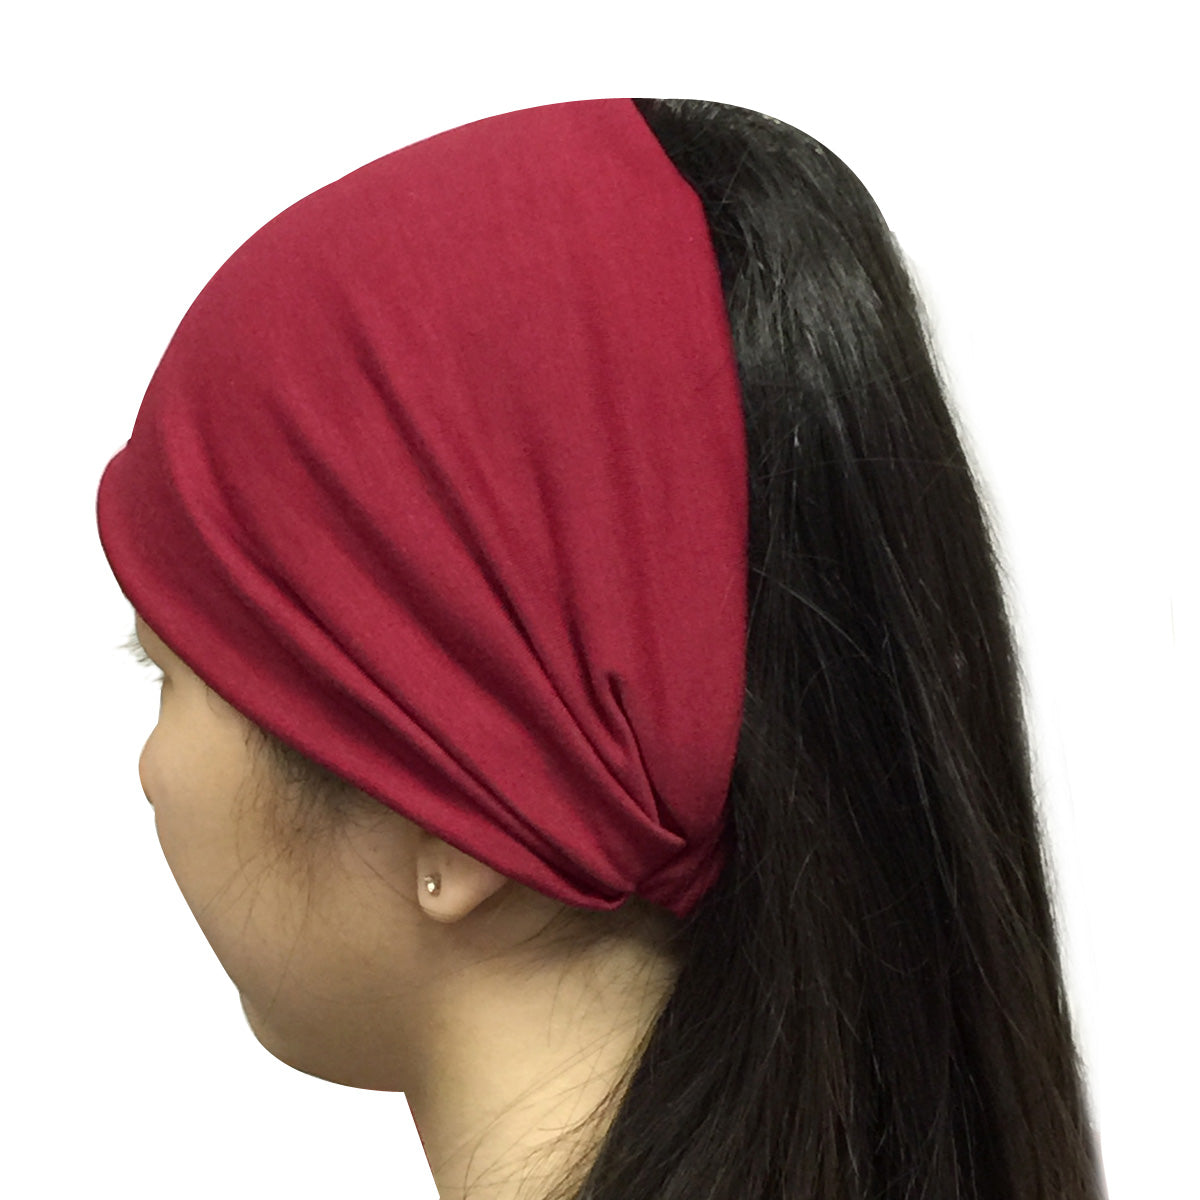 Wrapables Wide Headband Hair Accessory for Dress Up